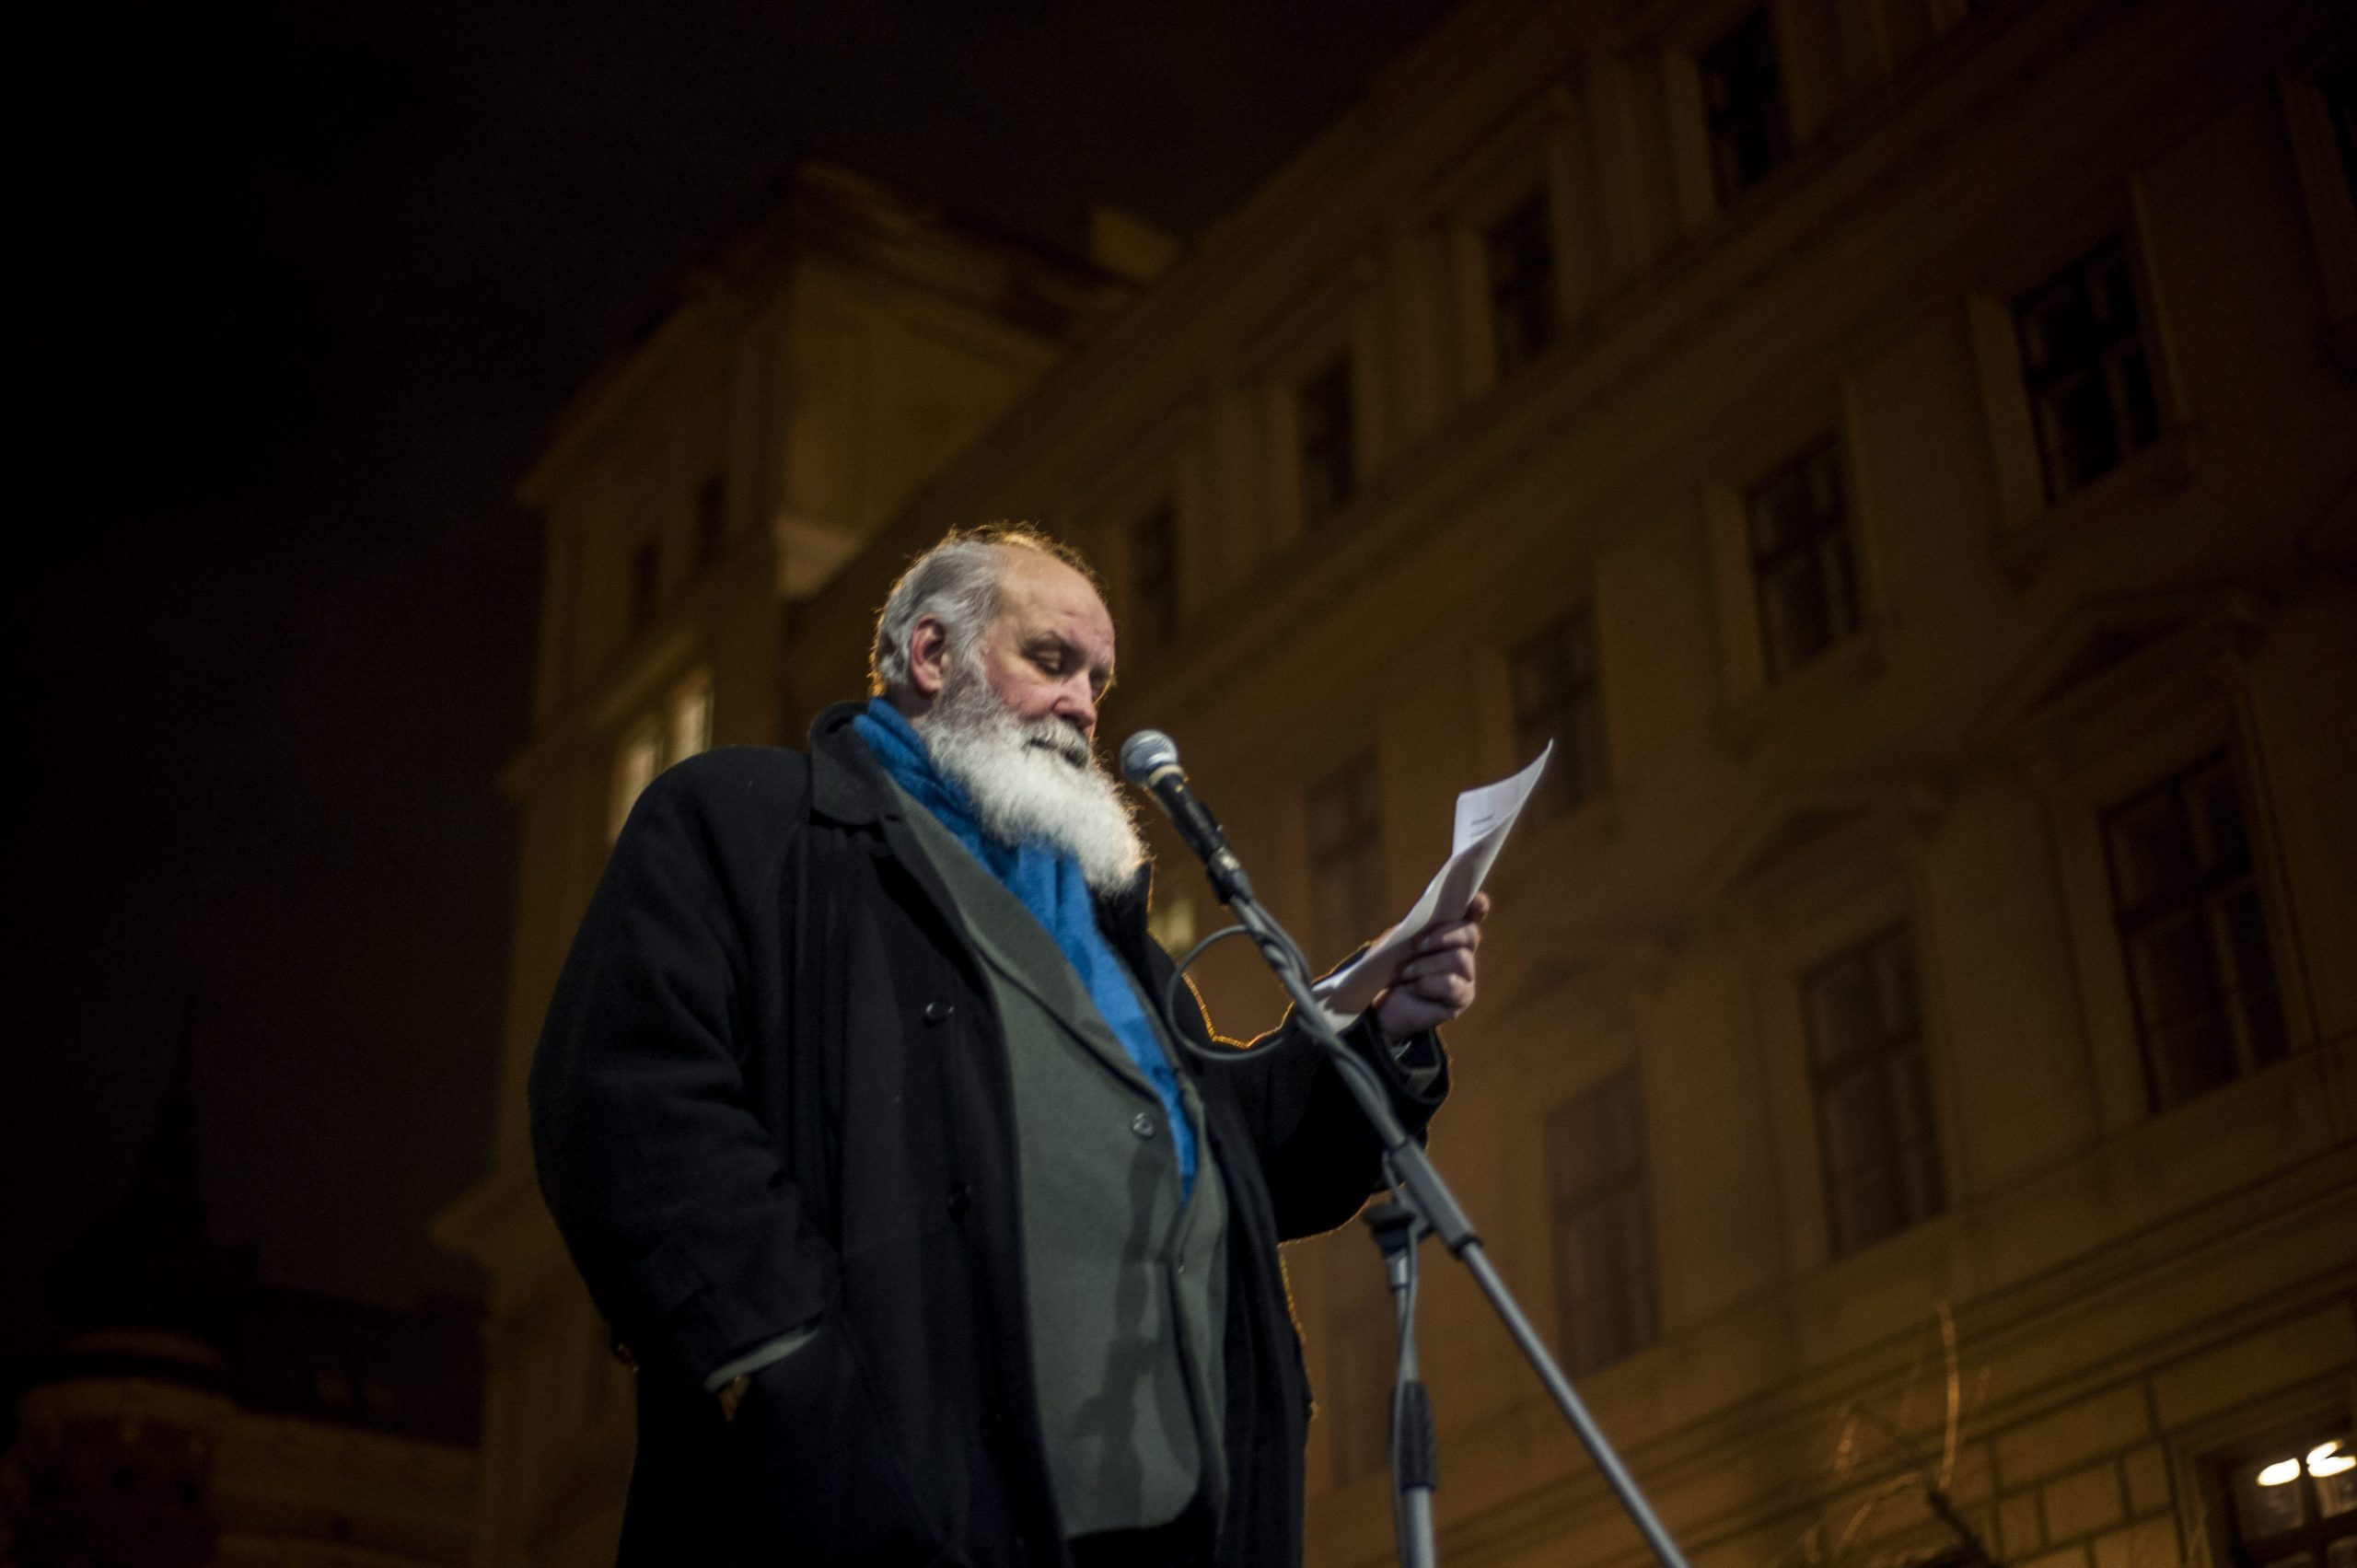 Orbán Critic Iványi's Small Church Turns to Supreme Court After Gigantic State Fine